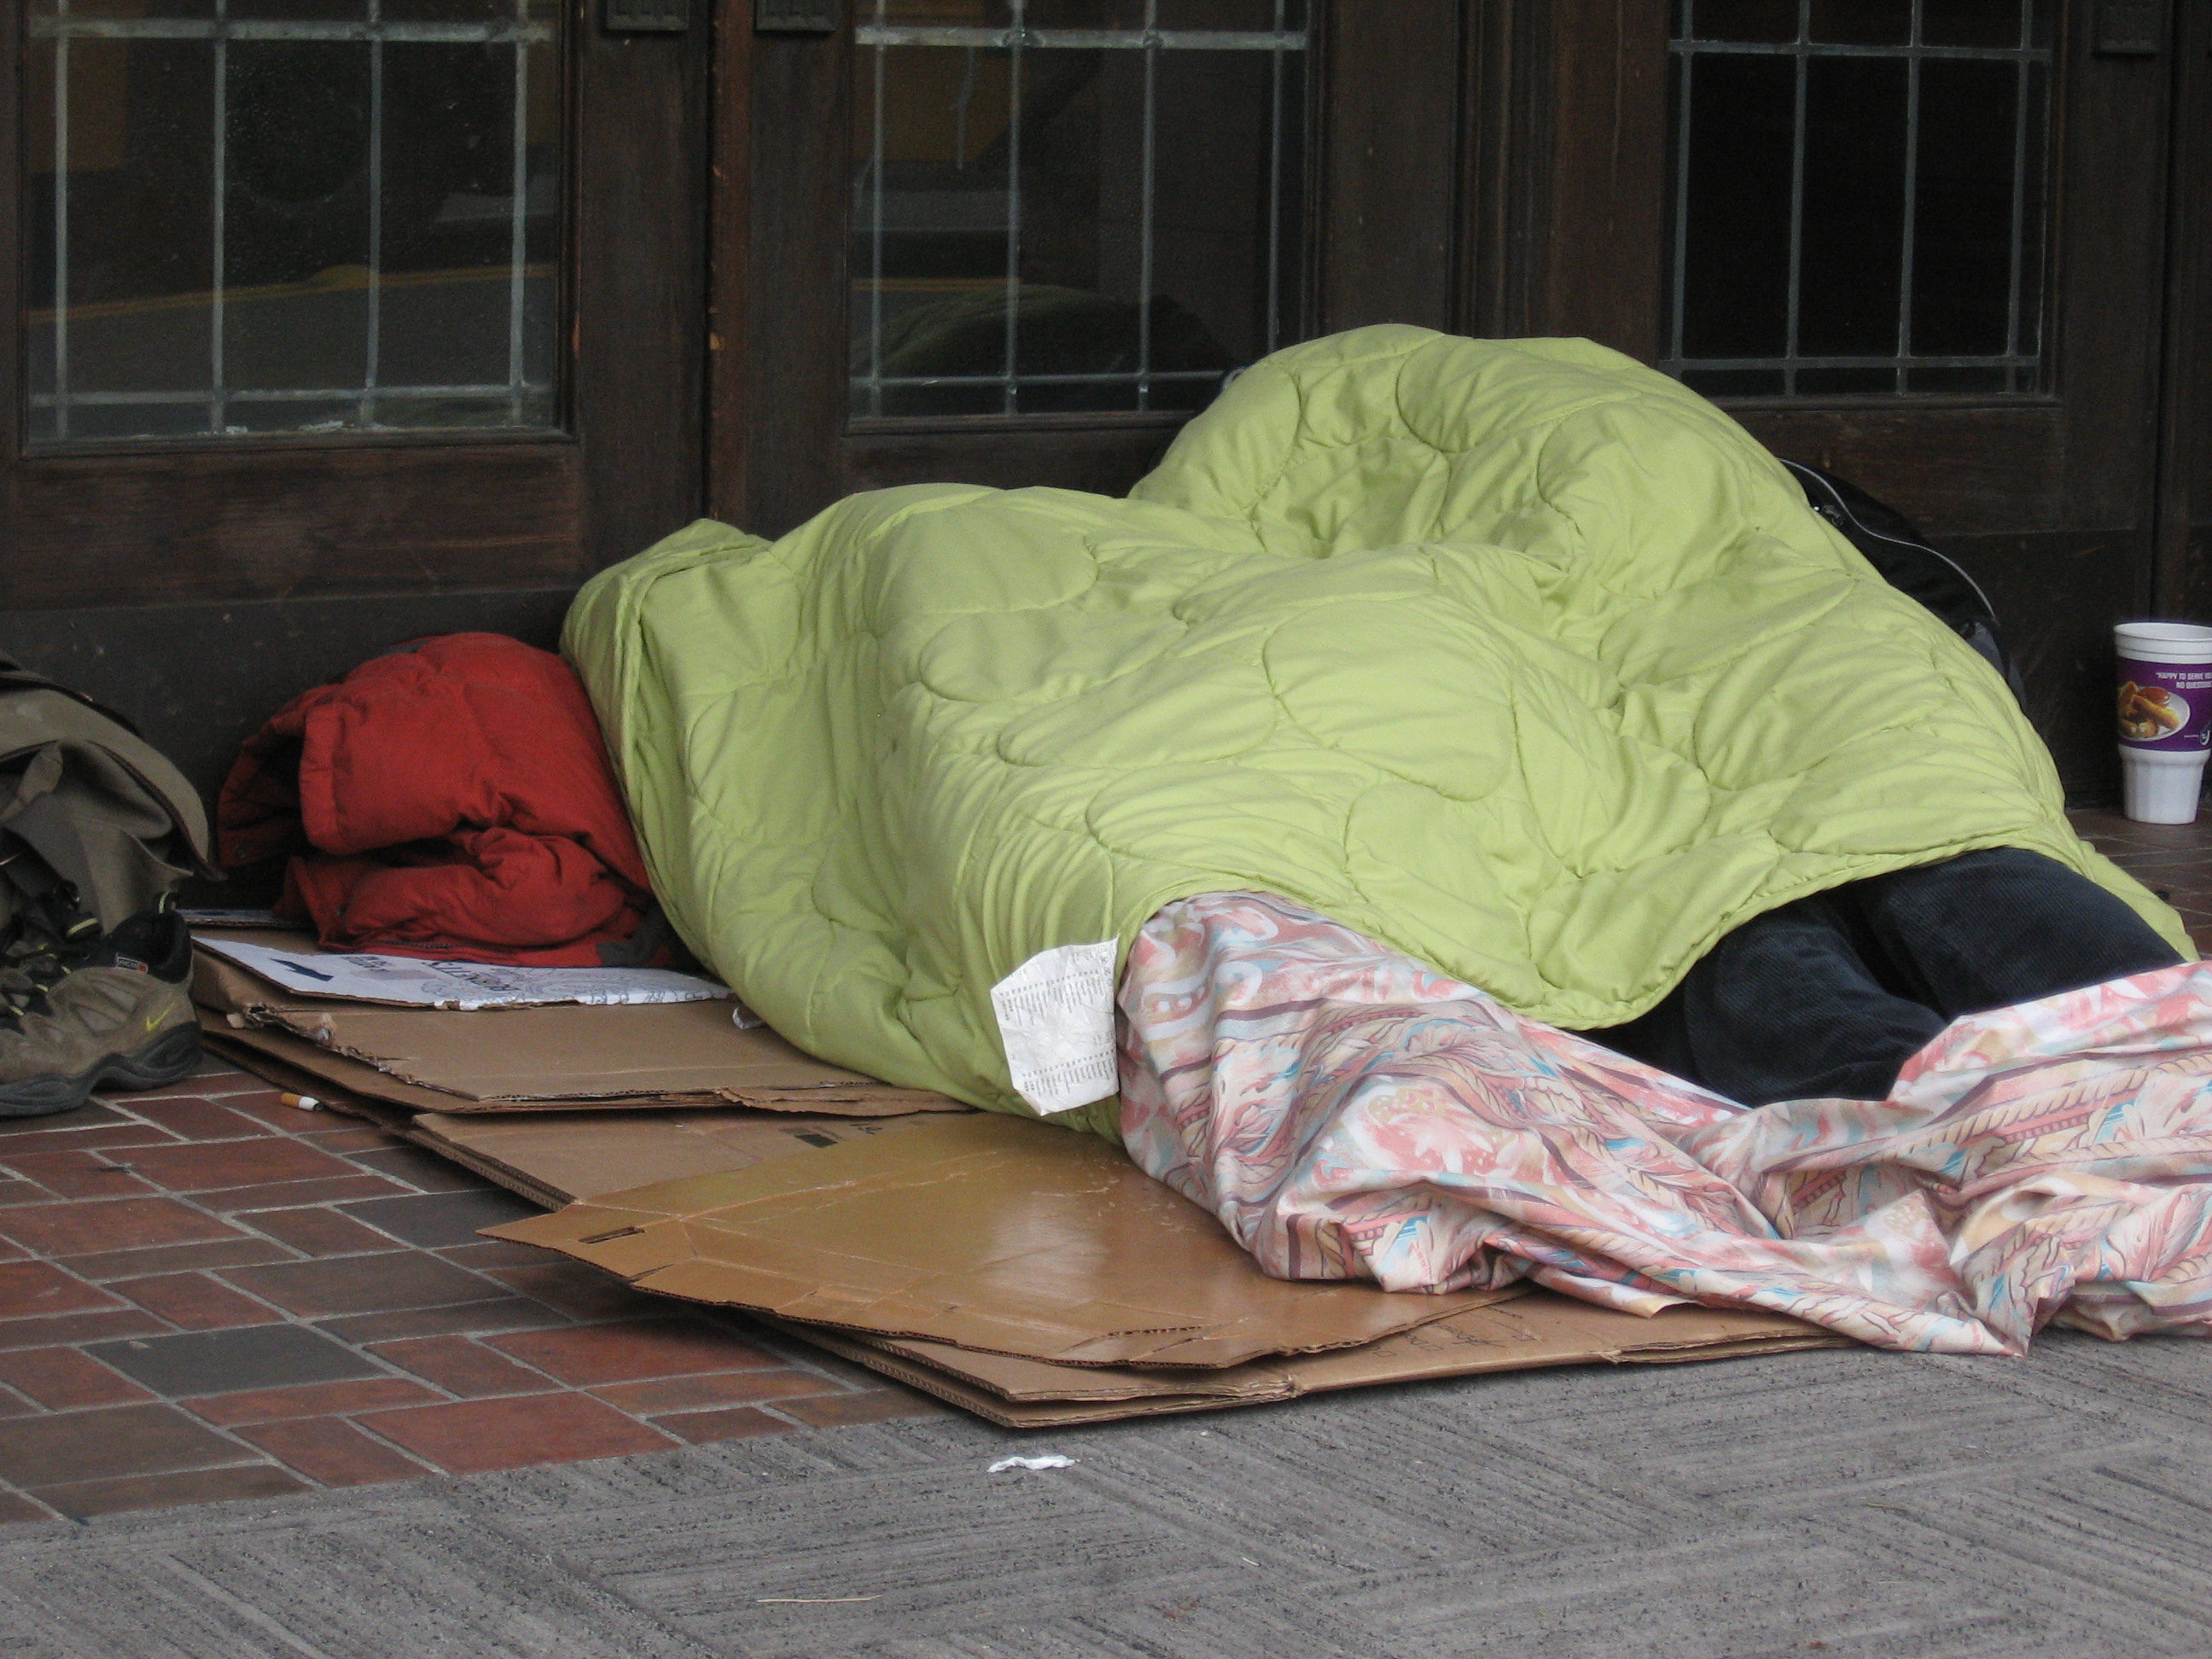 Homeless population has moved into Fairview, Wood Village